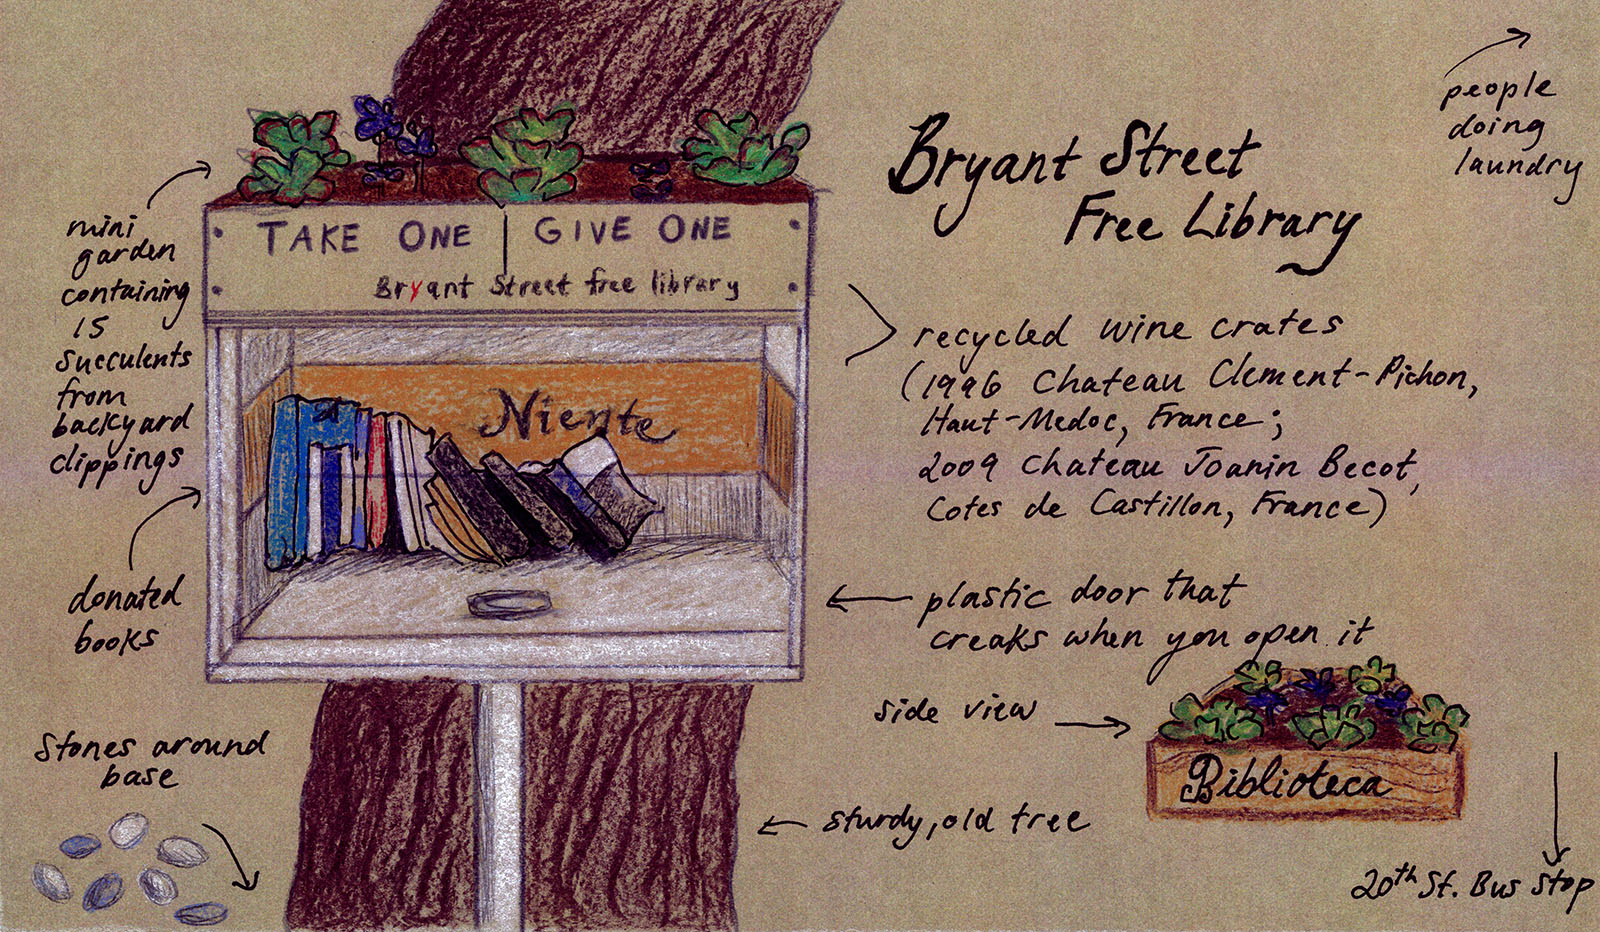 Take One, Give One: A Day at the Bryant Street Free Library